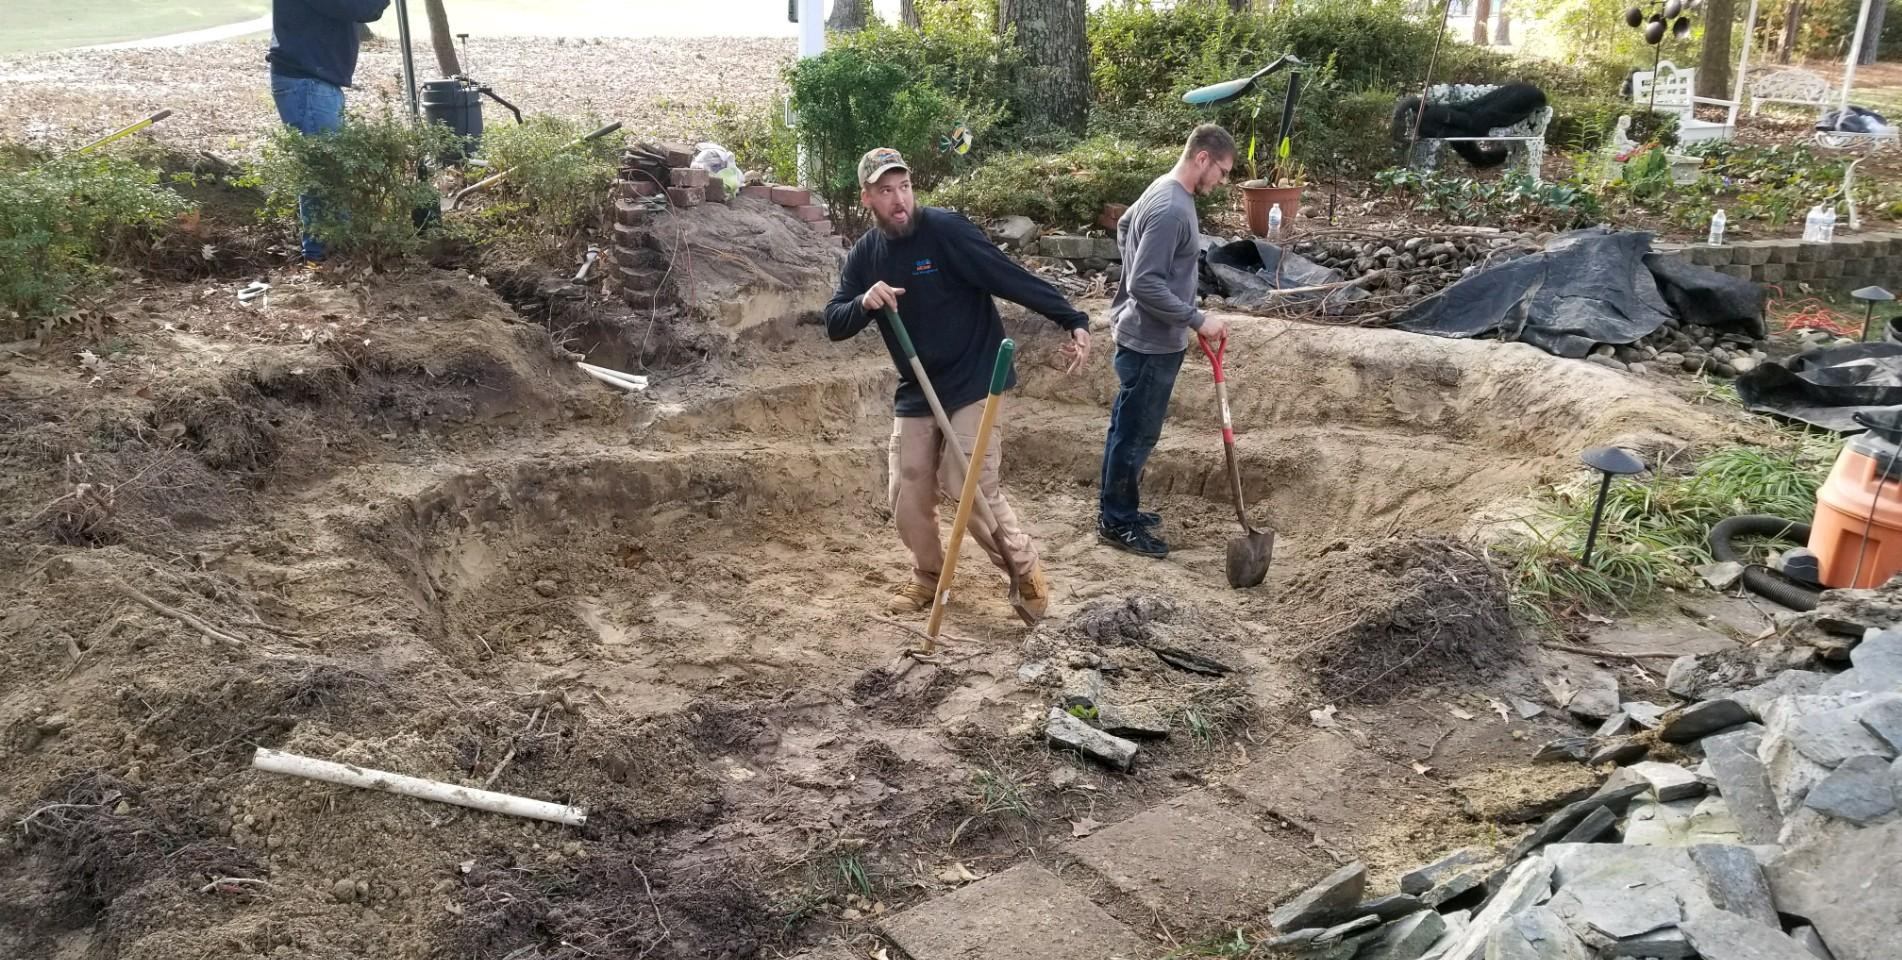 5. Shaping the Soil Of The New Pond